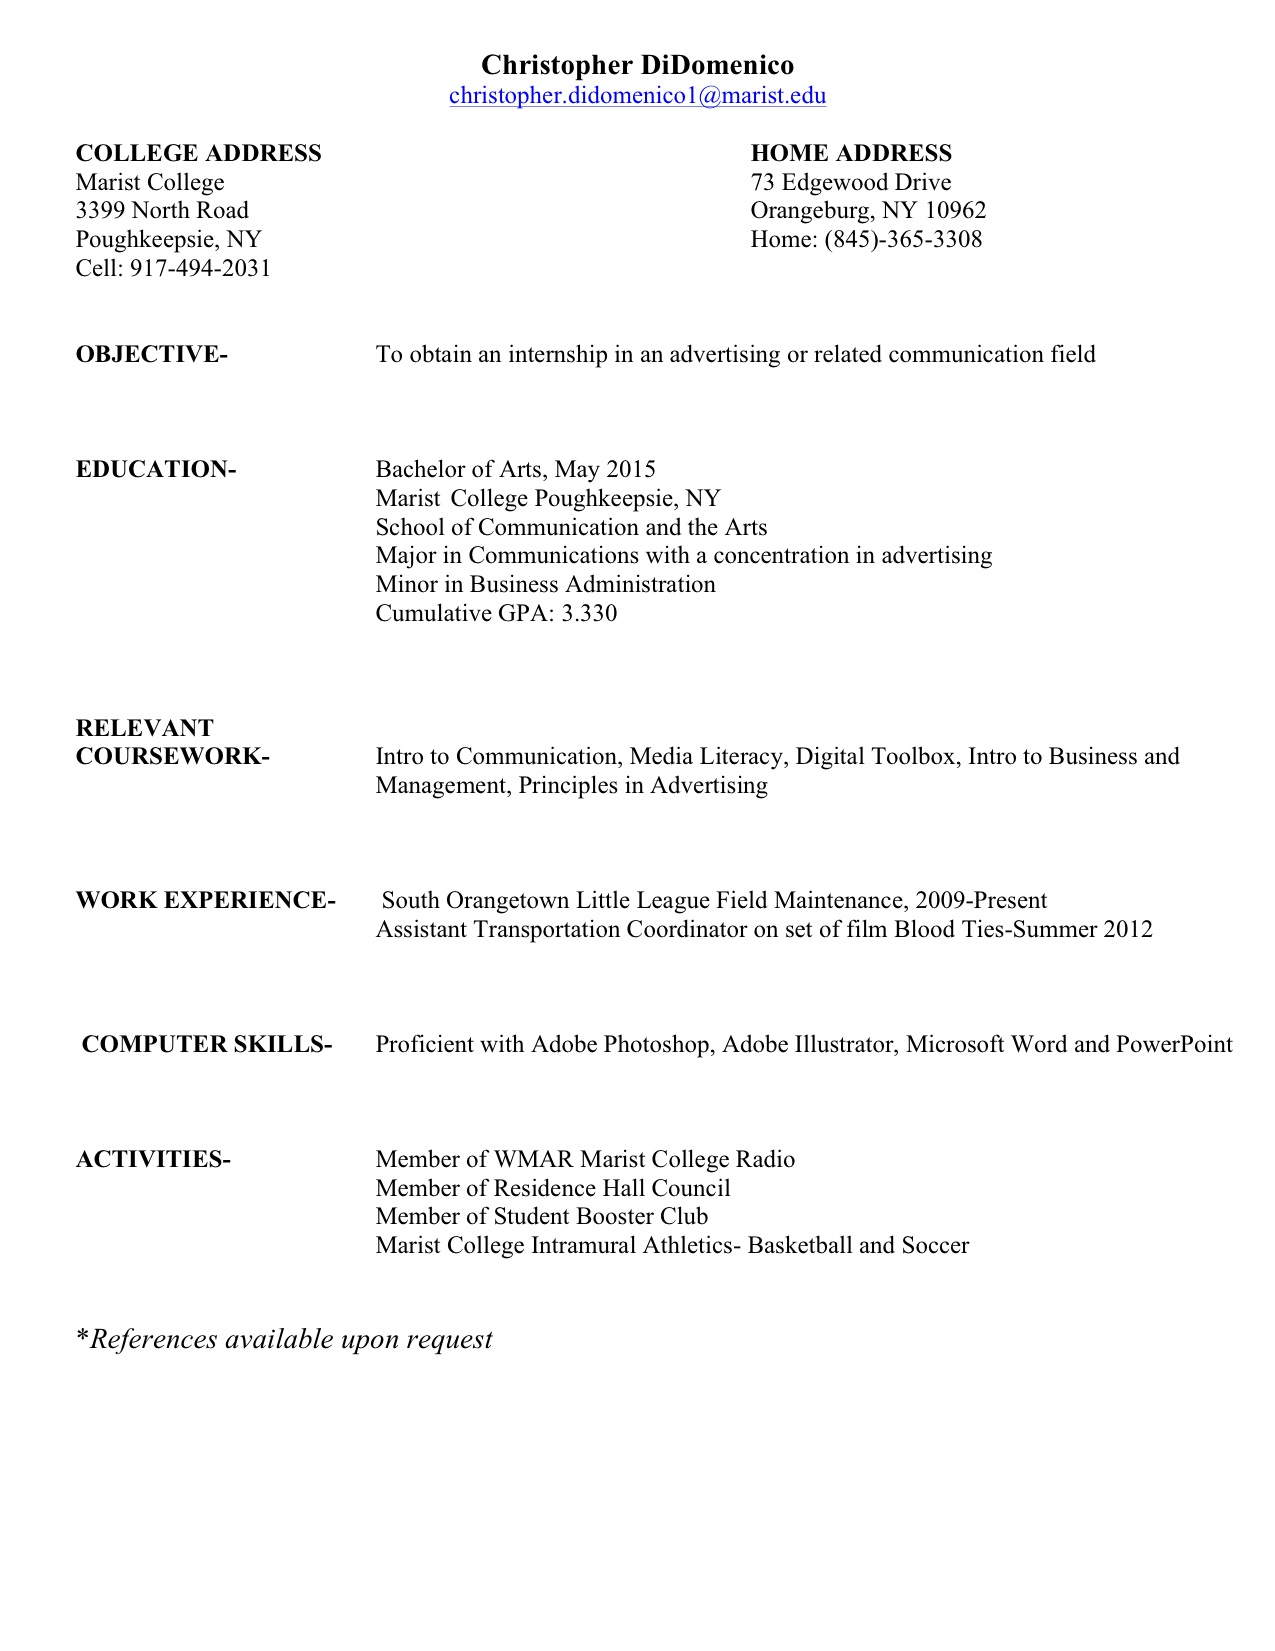 copy of a resume